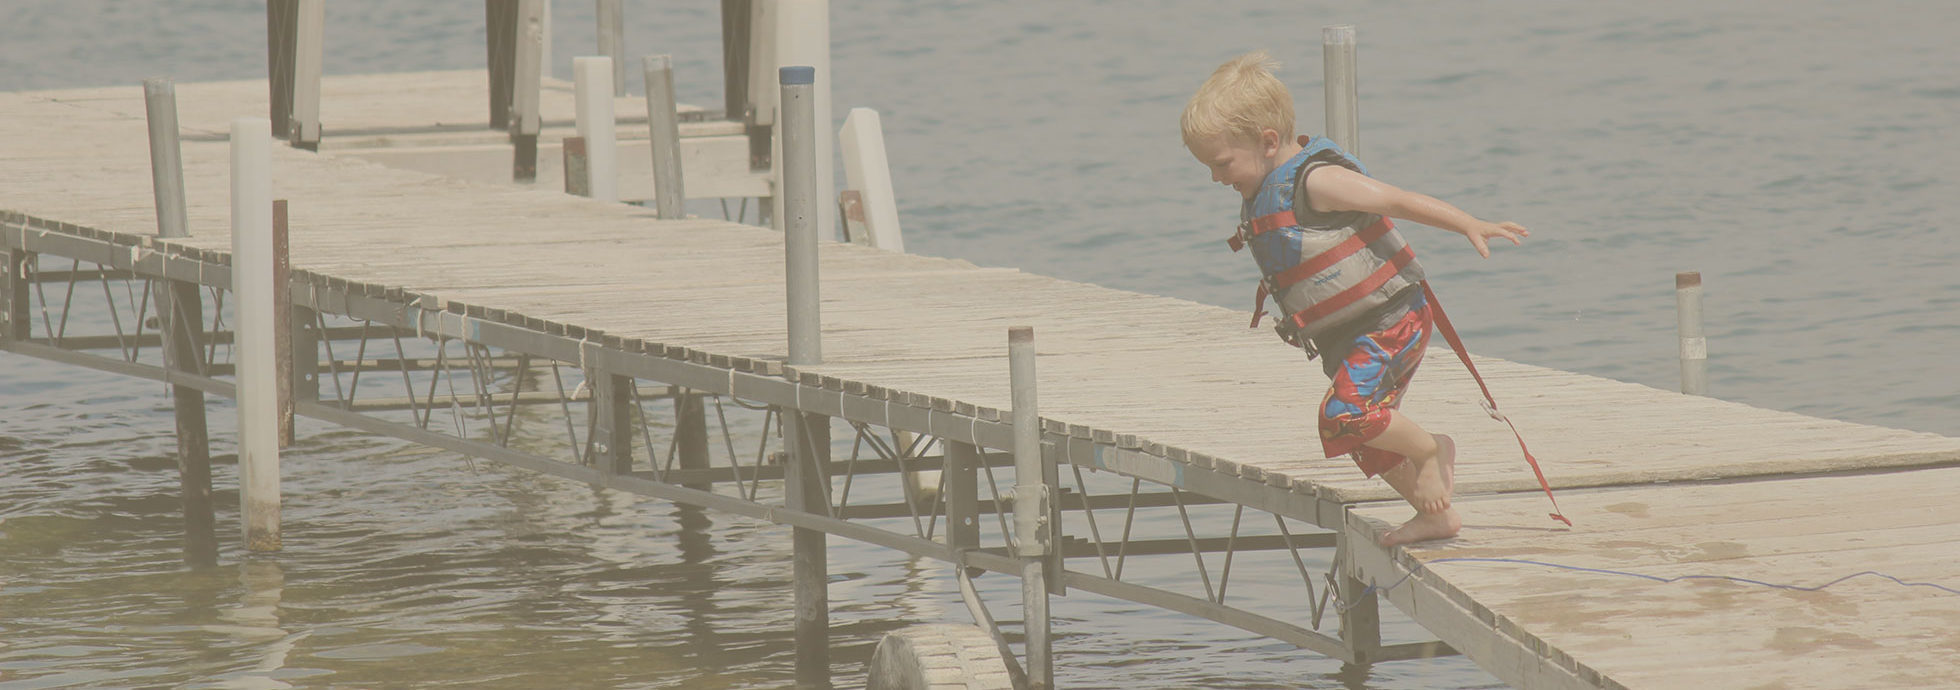 Happy young kid in life vest jumping into water from a boat dock at Eastbay Campground.